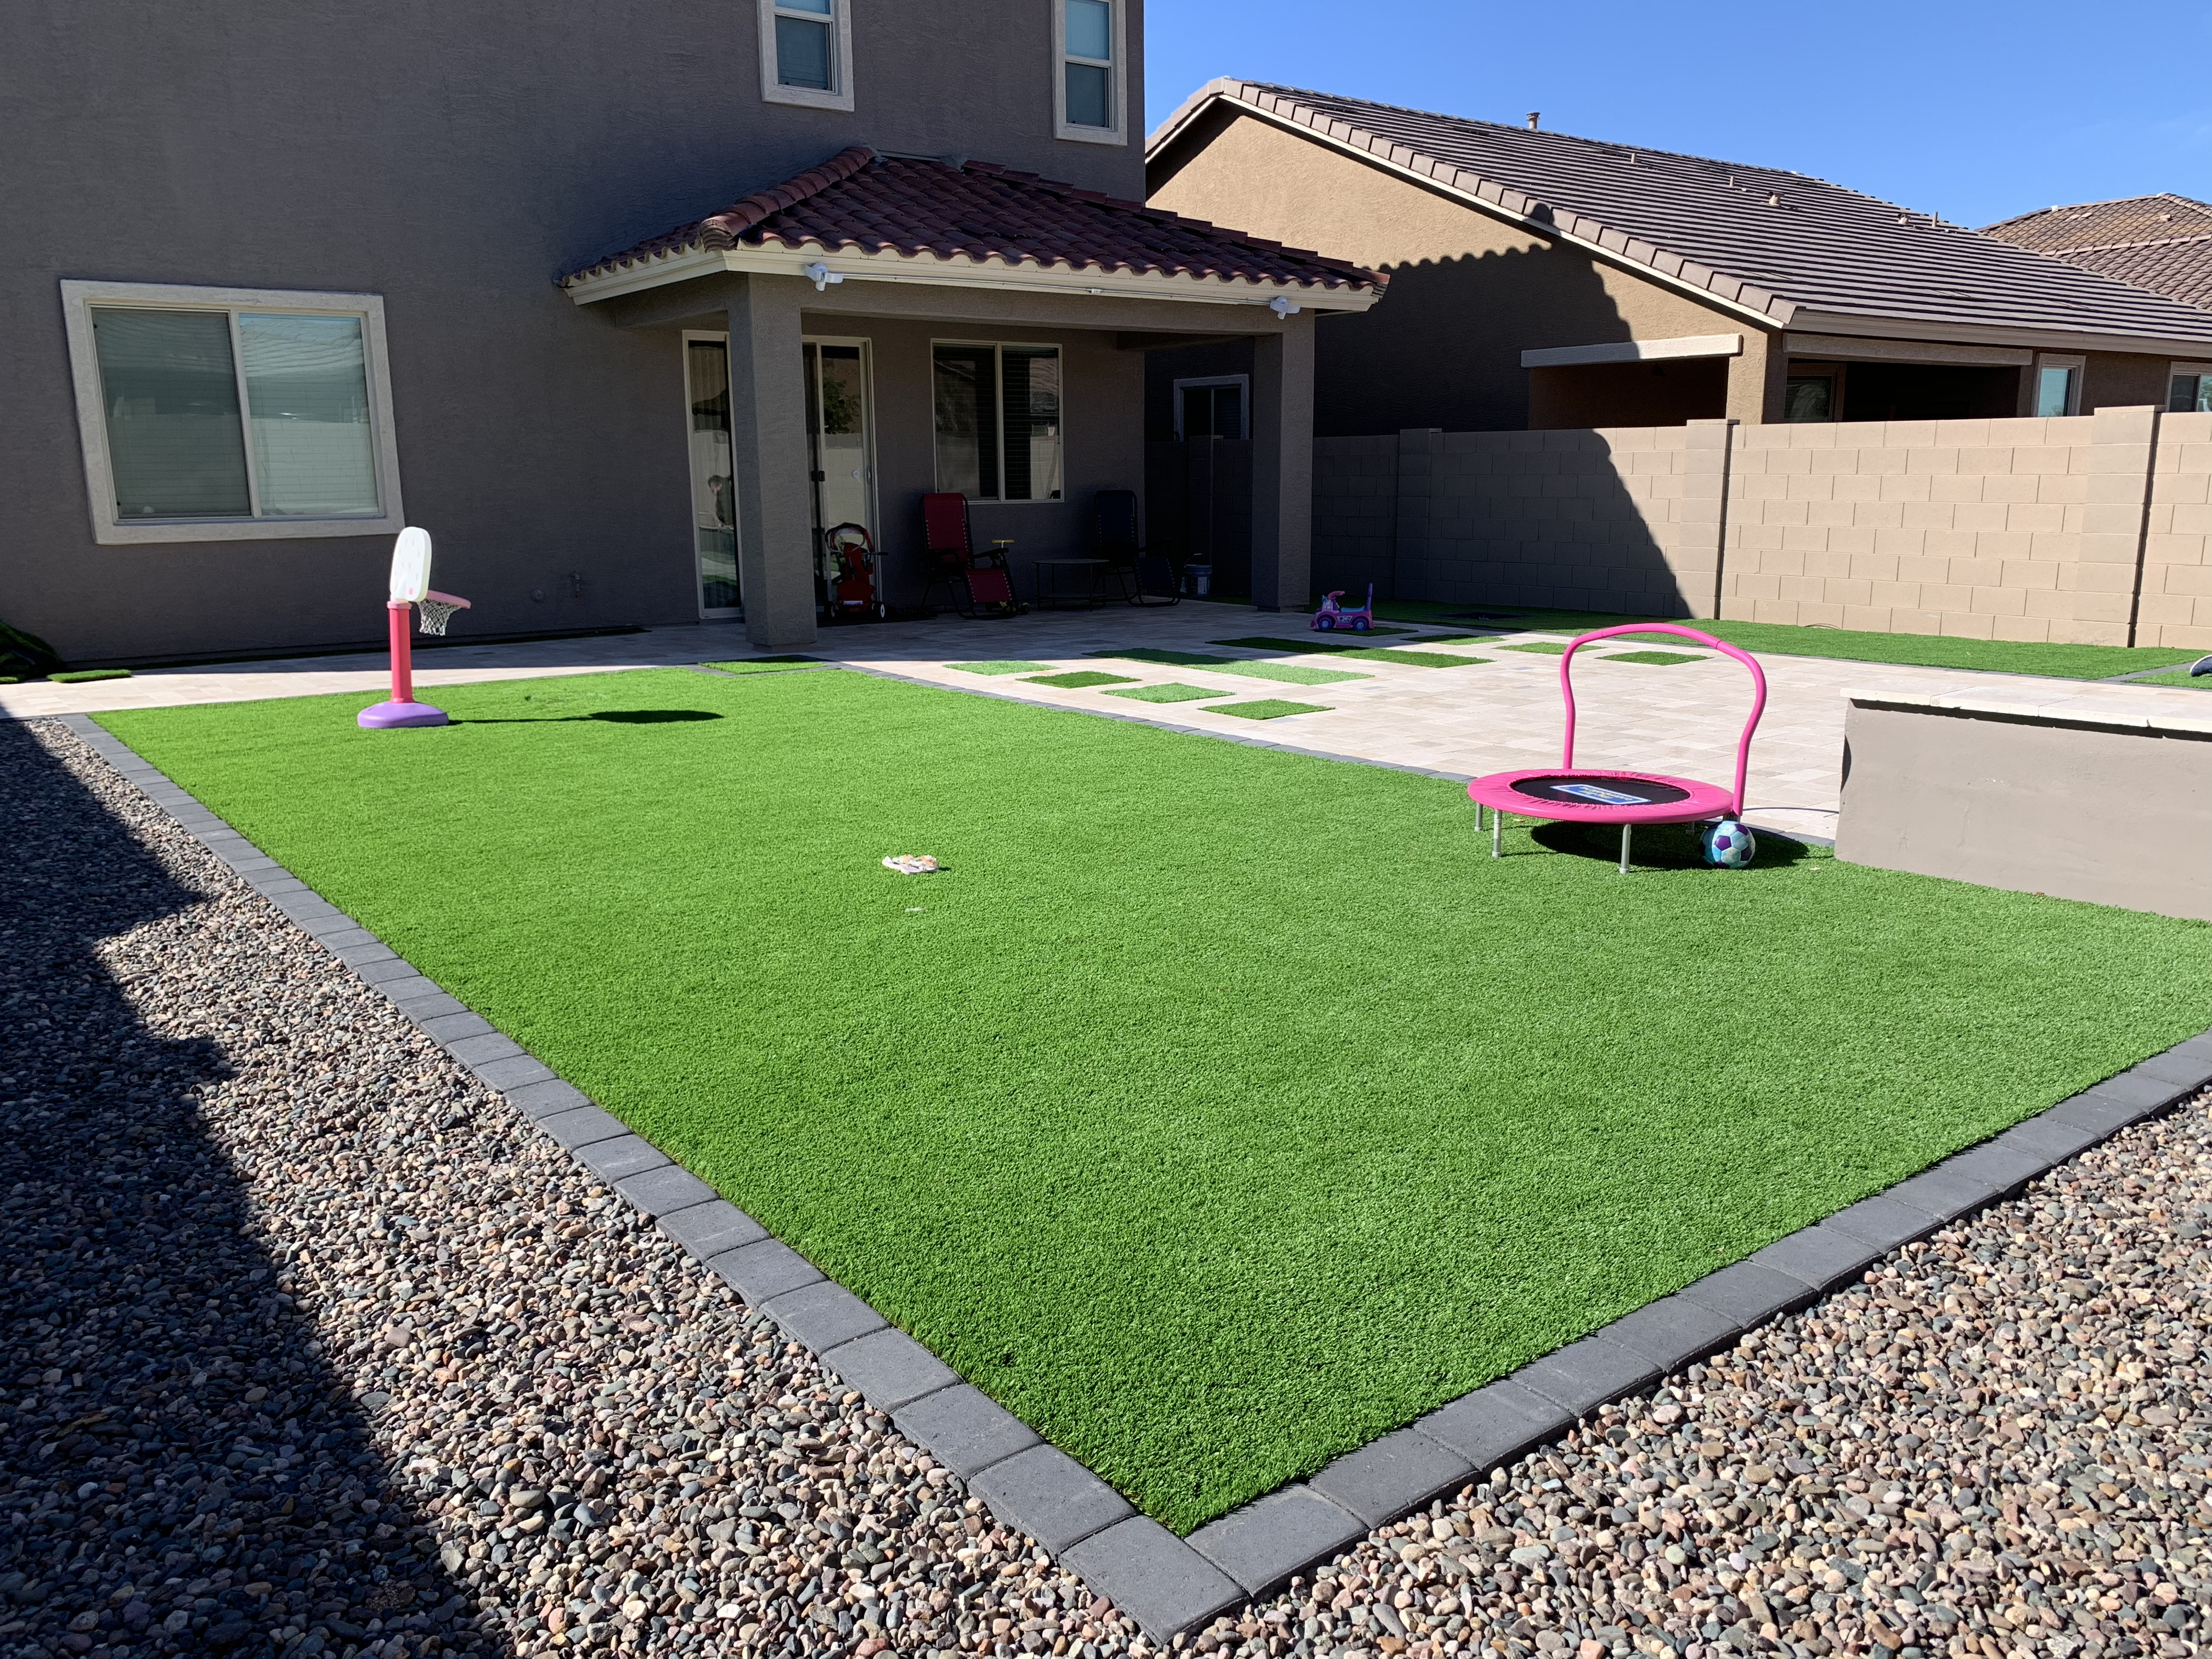 Synthetic turf is a smart invest on your backyard